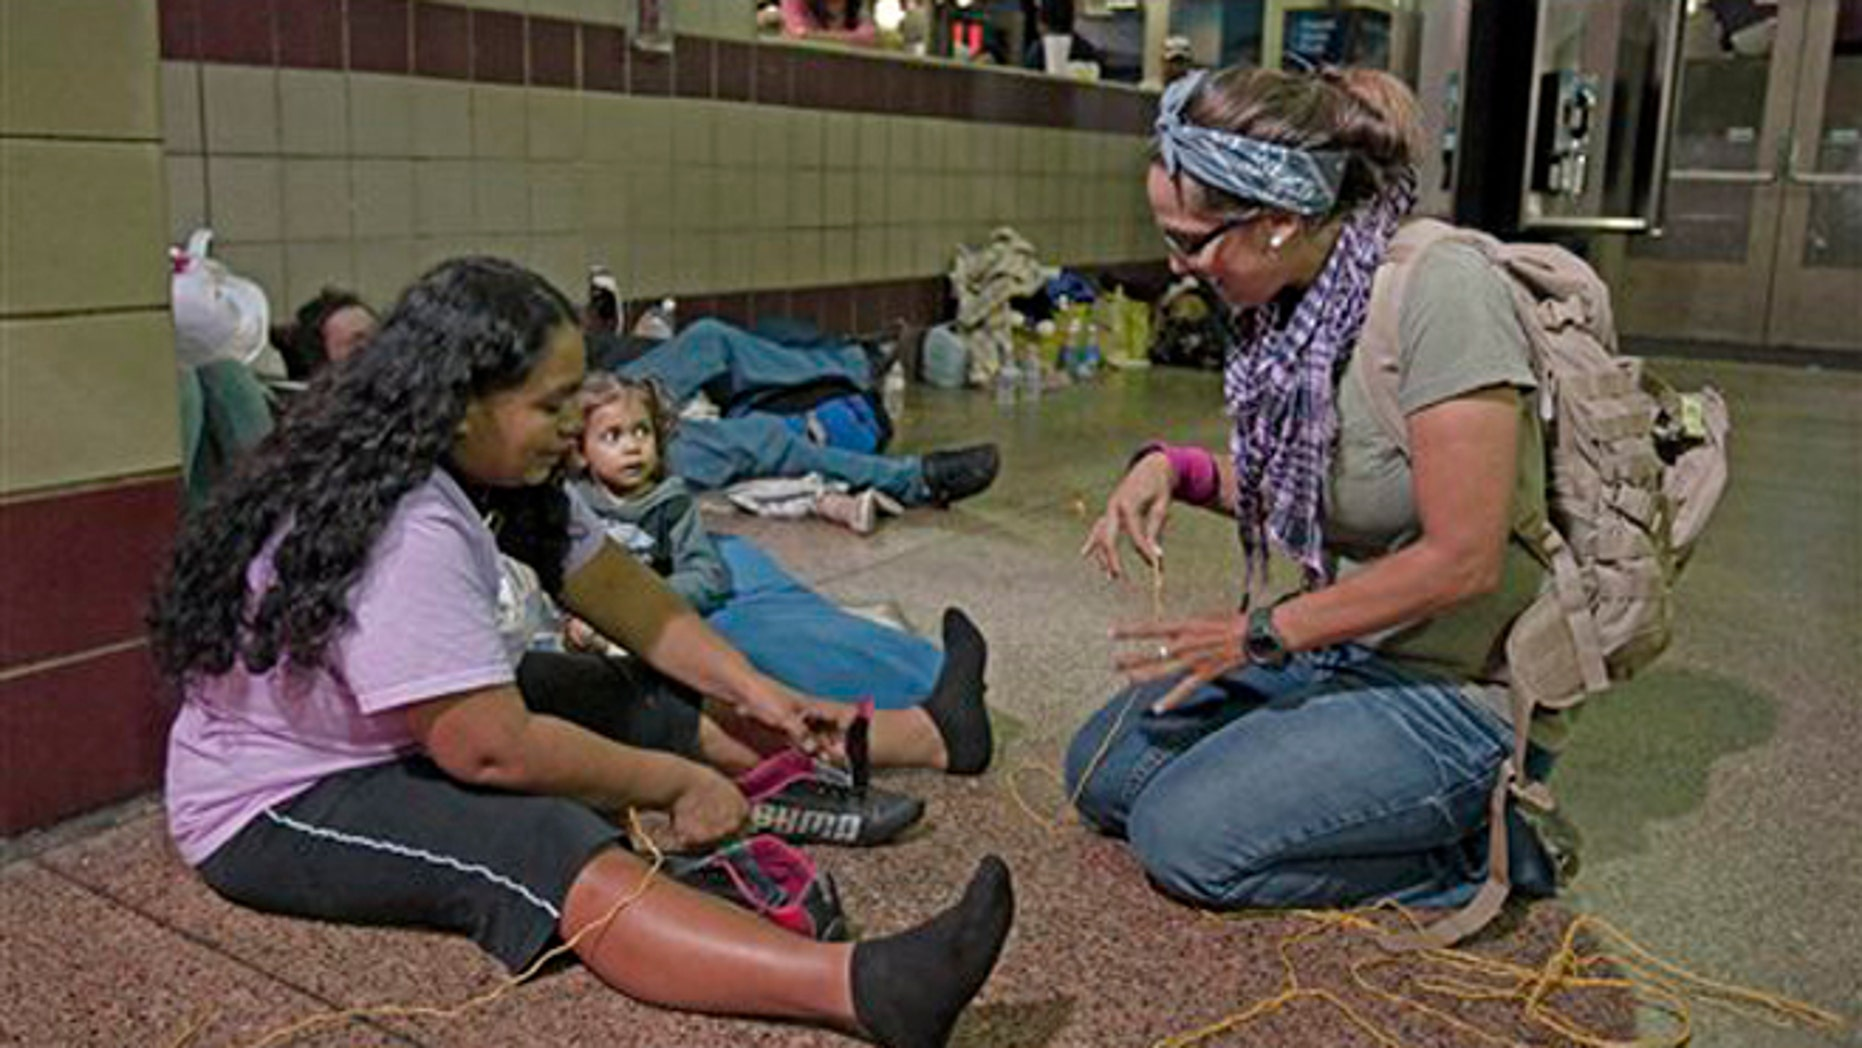 Volunteer Michelle Lewis of Phoenix, right, helps Doris Suyapa, of Honduras, with her shoes, by using yellow rope for shoe laces, Thursday, May 29, 2014 at the Greyhound bus terminal in Phoenix.  About 400 mostly Central American women and children caught crossing from Mexico into south Texas were flown to Arizona this weekend after border agents there ran out of space and resources.  Officials then dropped hundreds of them off at Phoenix and Tucson Greyhound stations, overwhelming the stations and humanitarian groups who were trying to help. (AP Photo/Rick Scuteri)